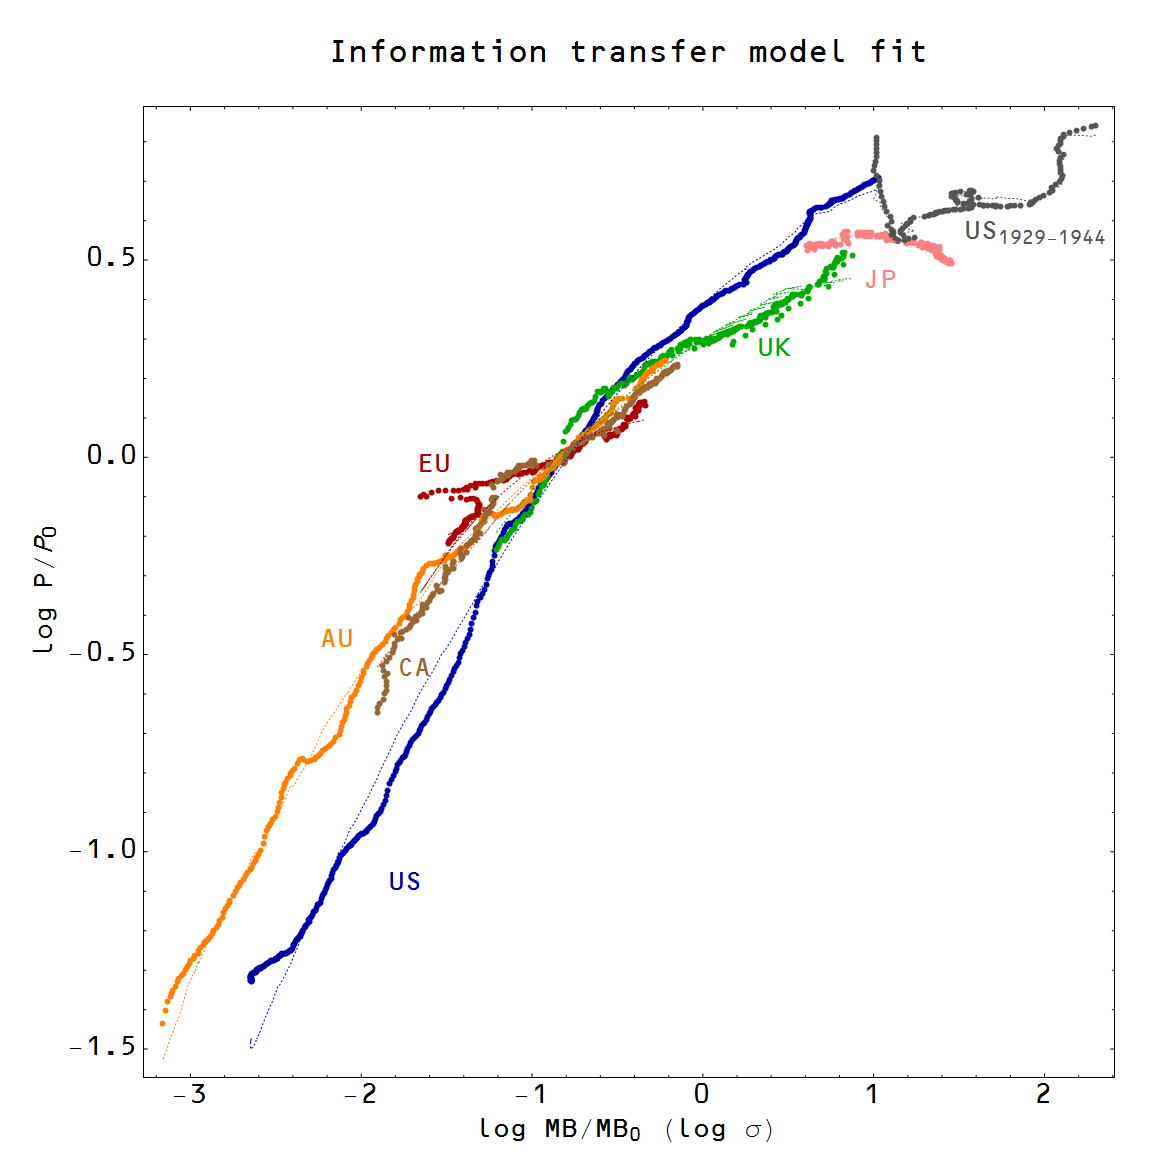 Information Transfer Economics It Really Does Seem To Be About The Update I Have Updated Diagram Based On Comments Got This P Sigma Plot M0